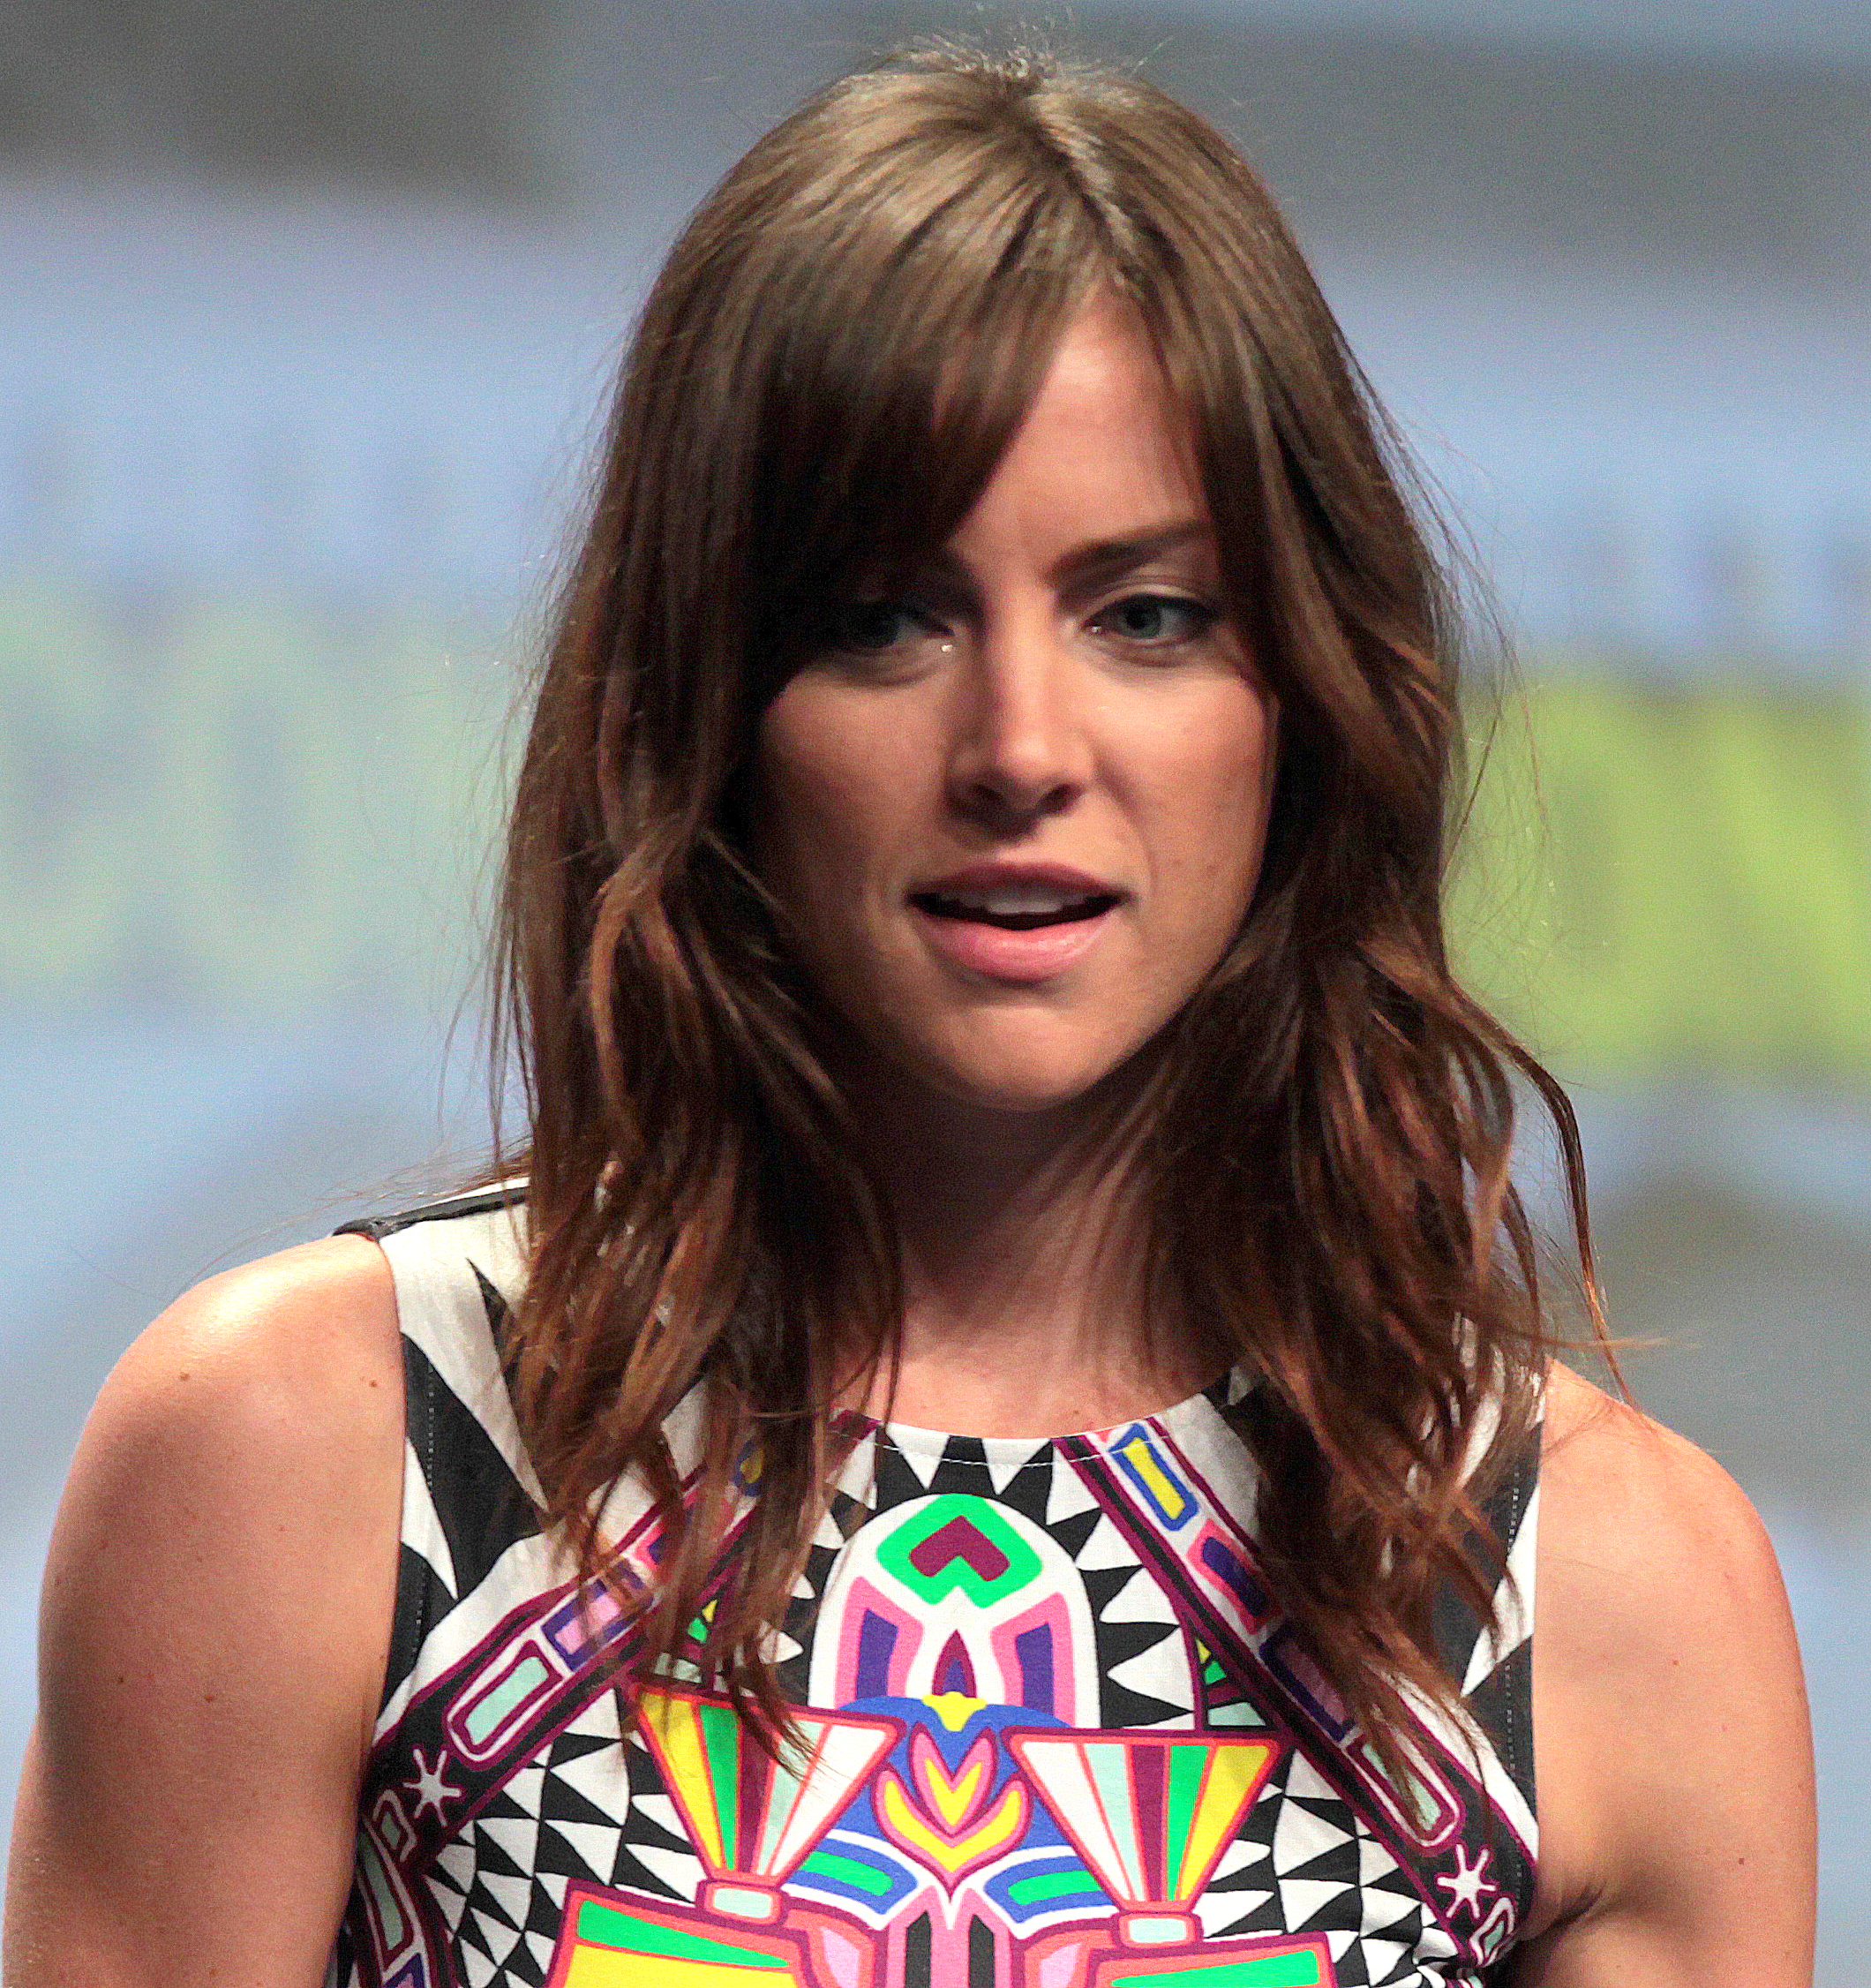 Watch Jessica Stroup video